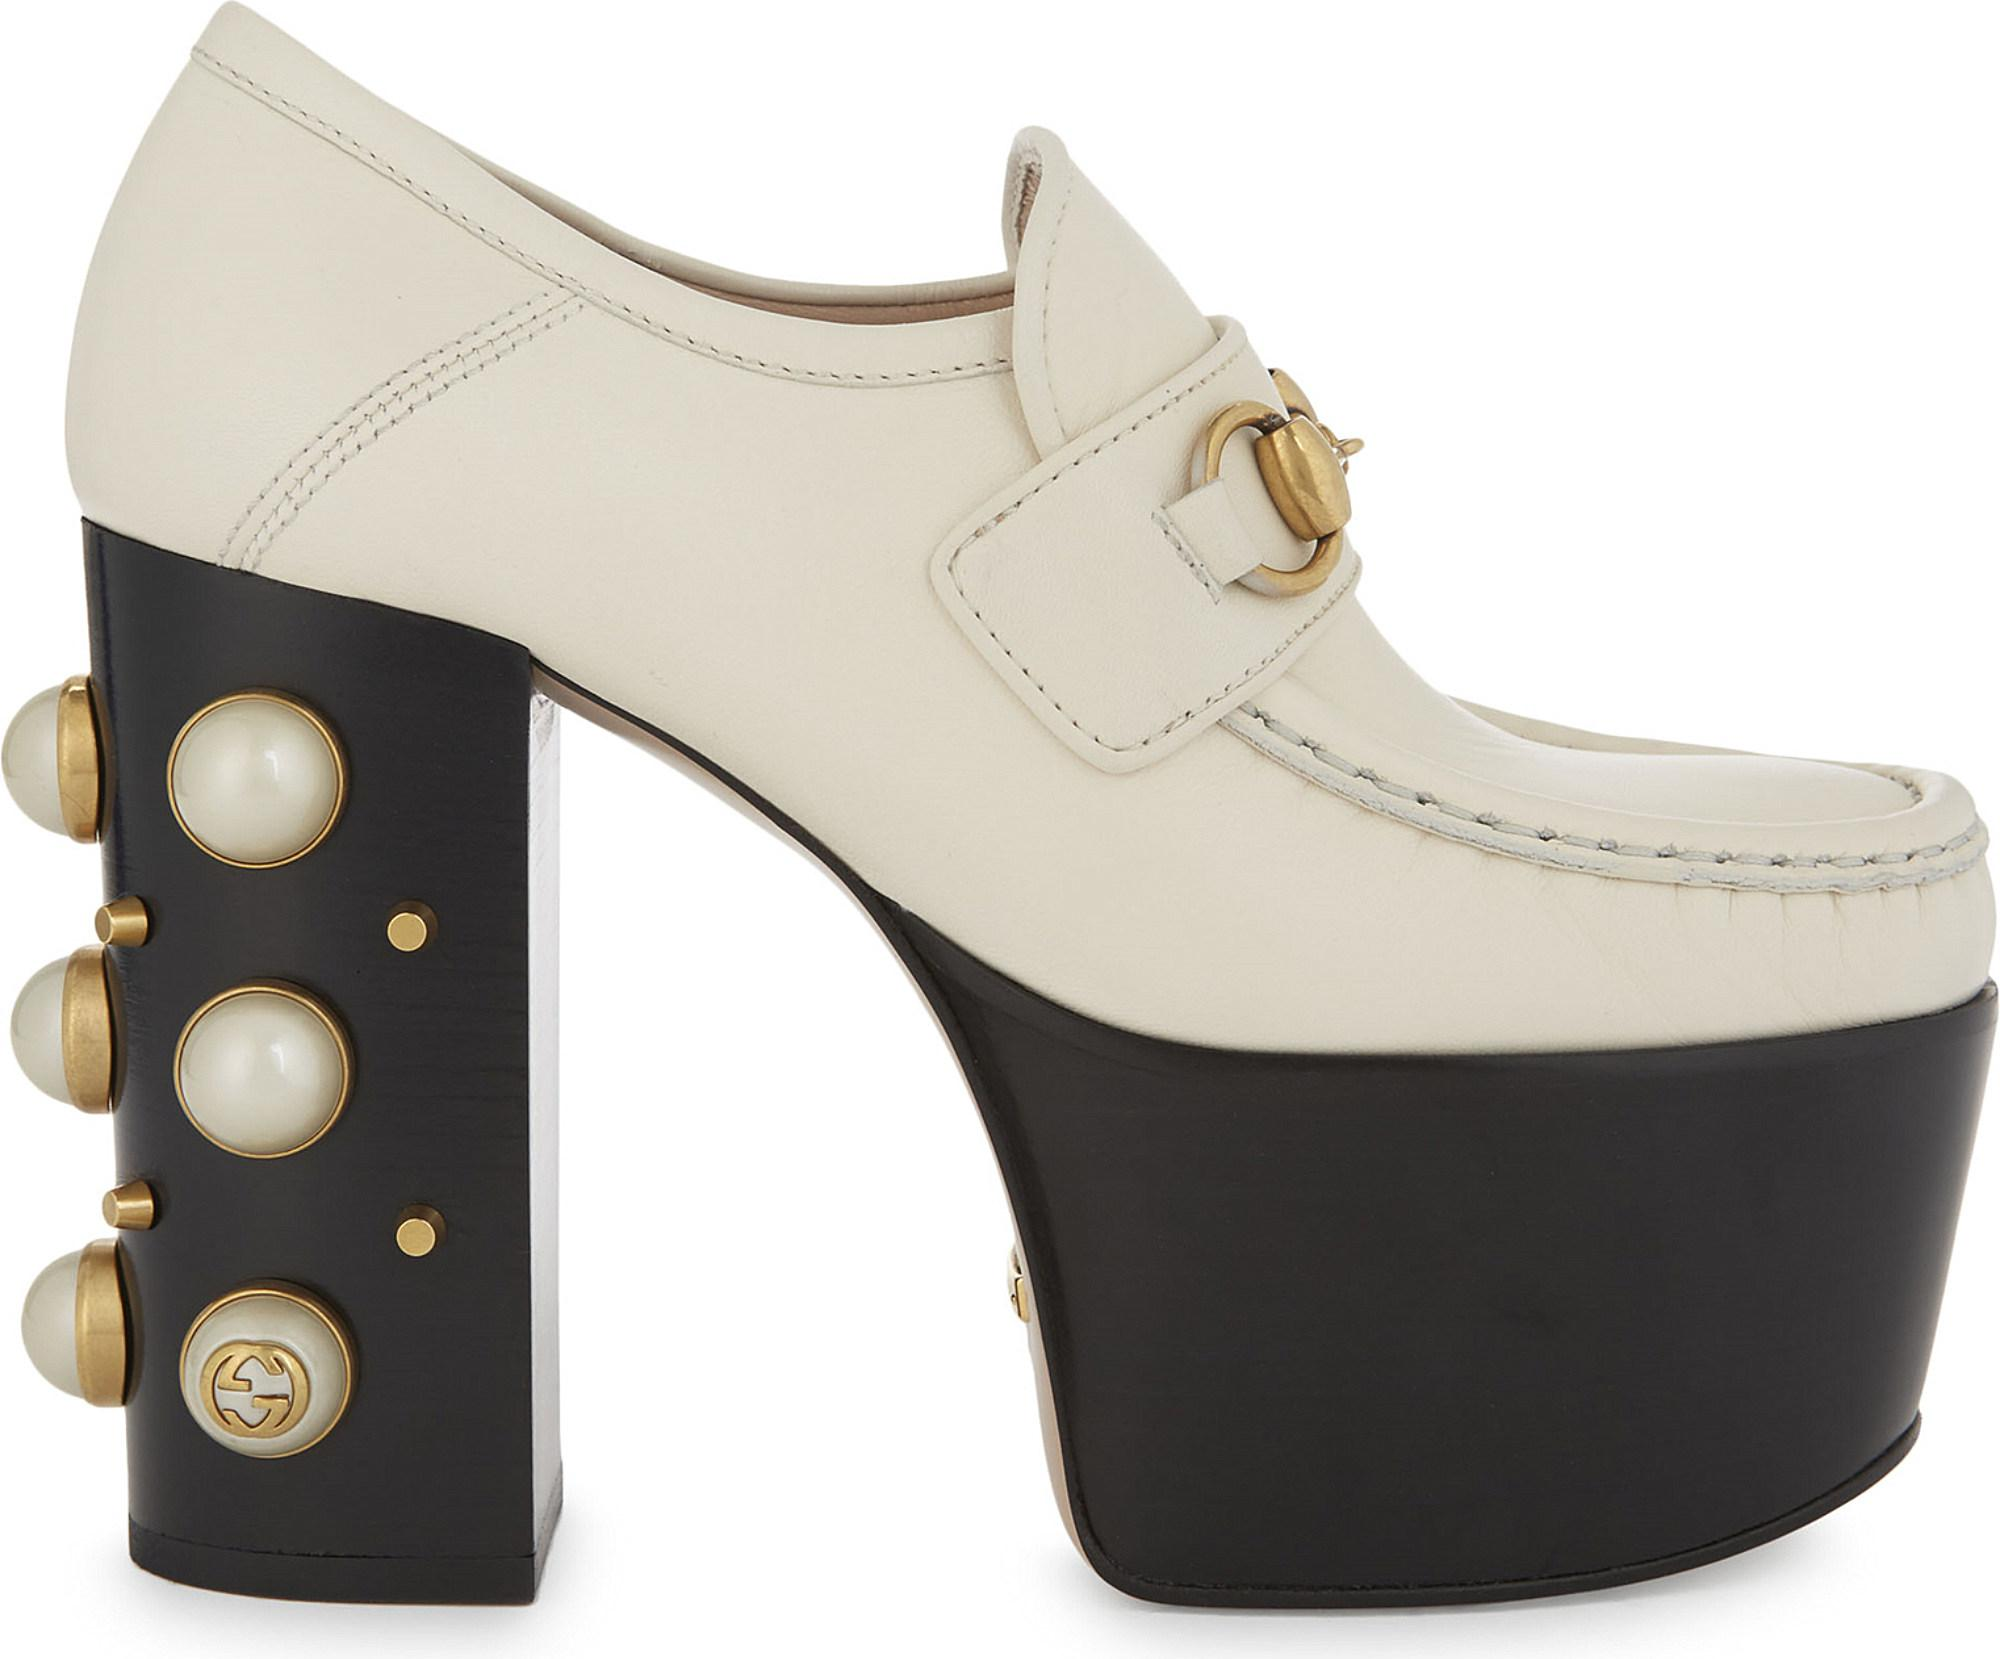 748e0e5ad37 Lyst - Gucci Vegas 125 Pearl Leather High Heeled Loafers in White